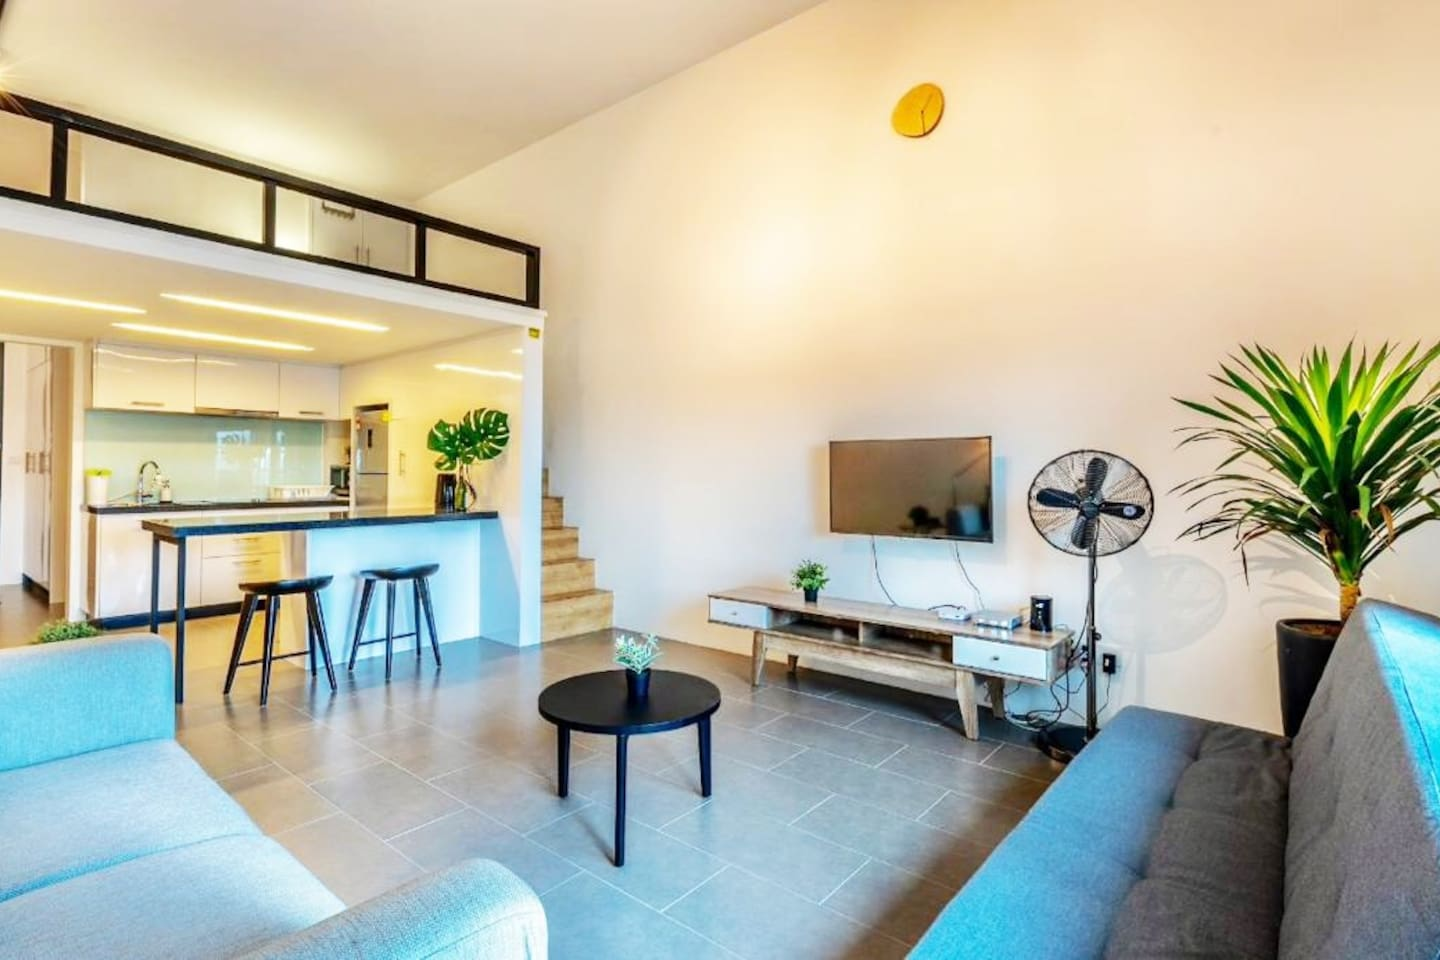 Fully furnished Studio Suite with all the modern Condominium facilities. Linked by a covered roof bridge to the Bangsar LRT Station (Kelana Jaya Line).